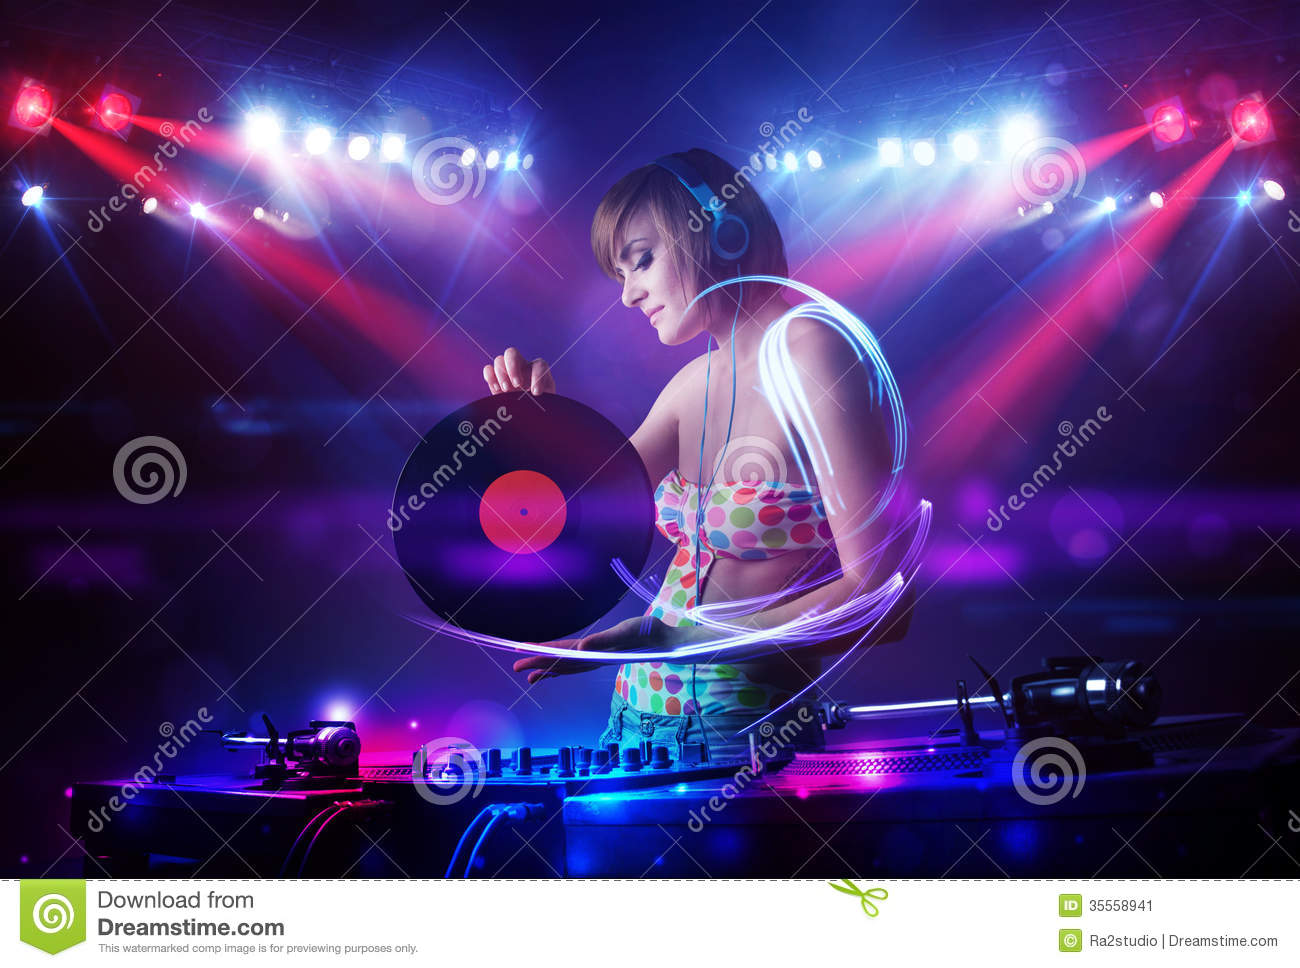 disc jockey girl playing music with light beam effects on stage stock illustration image 35558941. Black Bedroom Furniture Sets. Home Design Ideas